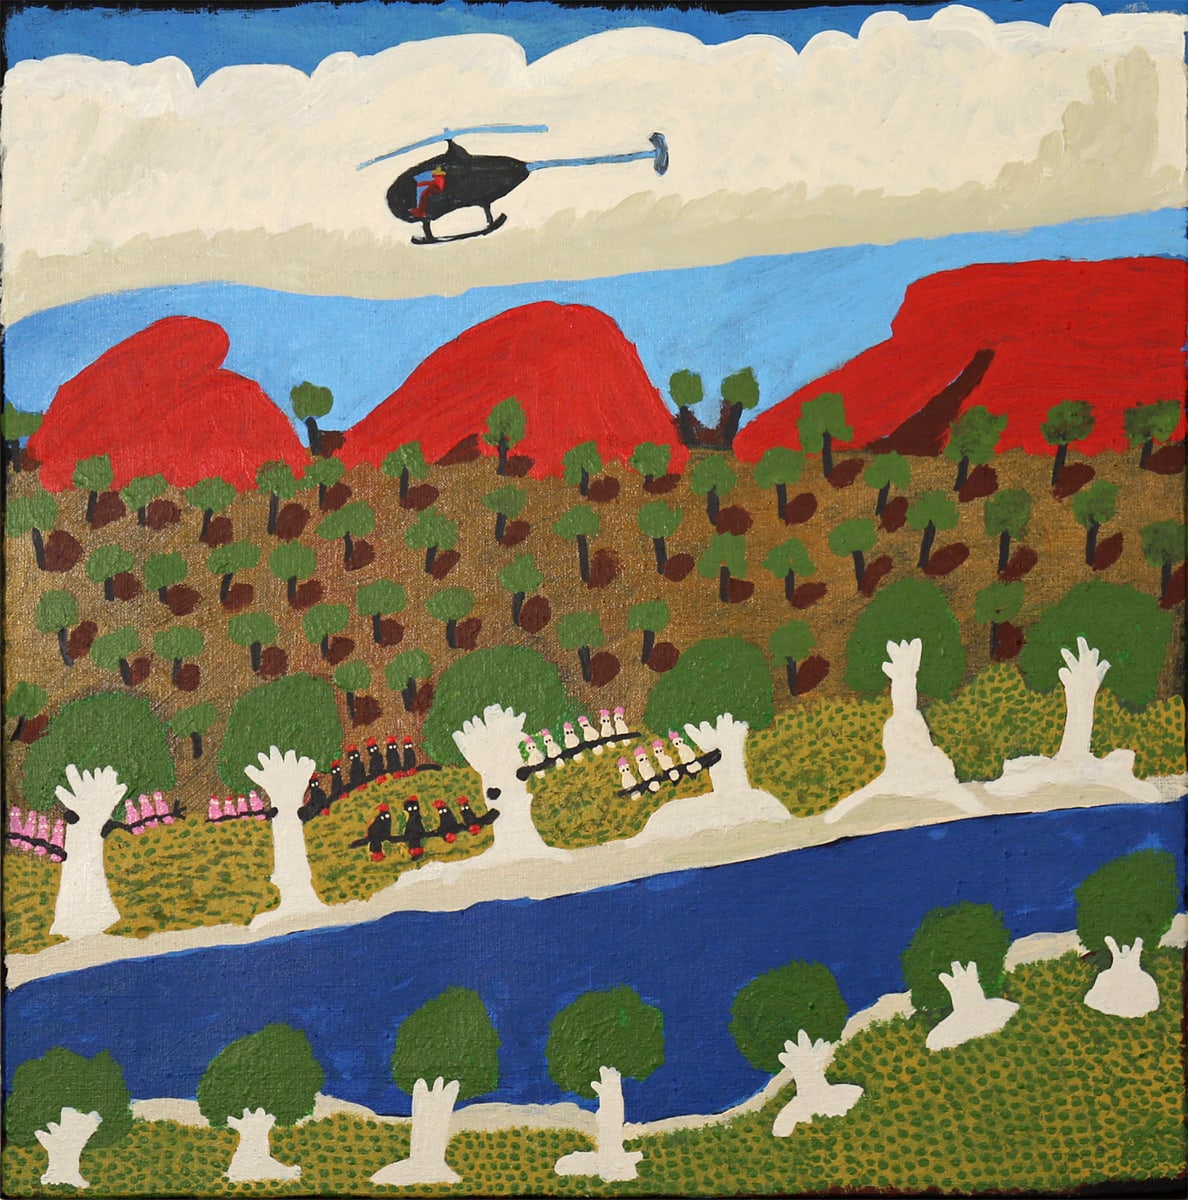 Grace Kemarre Robinya Helicopter looking for cattle, birds sit in tree acrylic on linen 55 x 55.5 cm